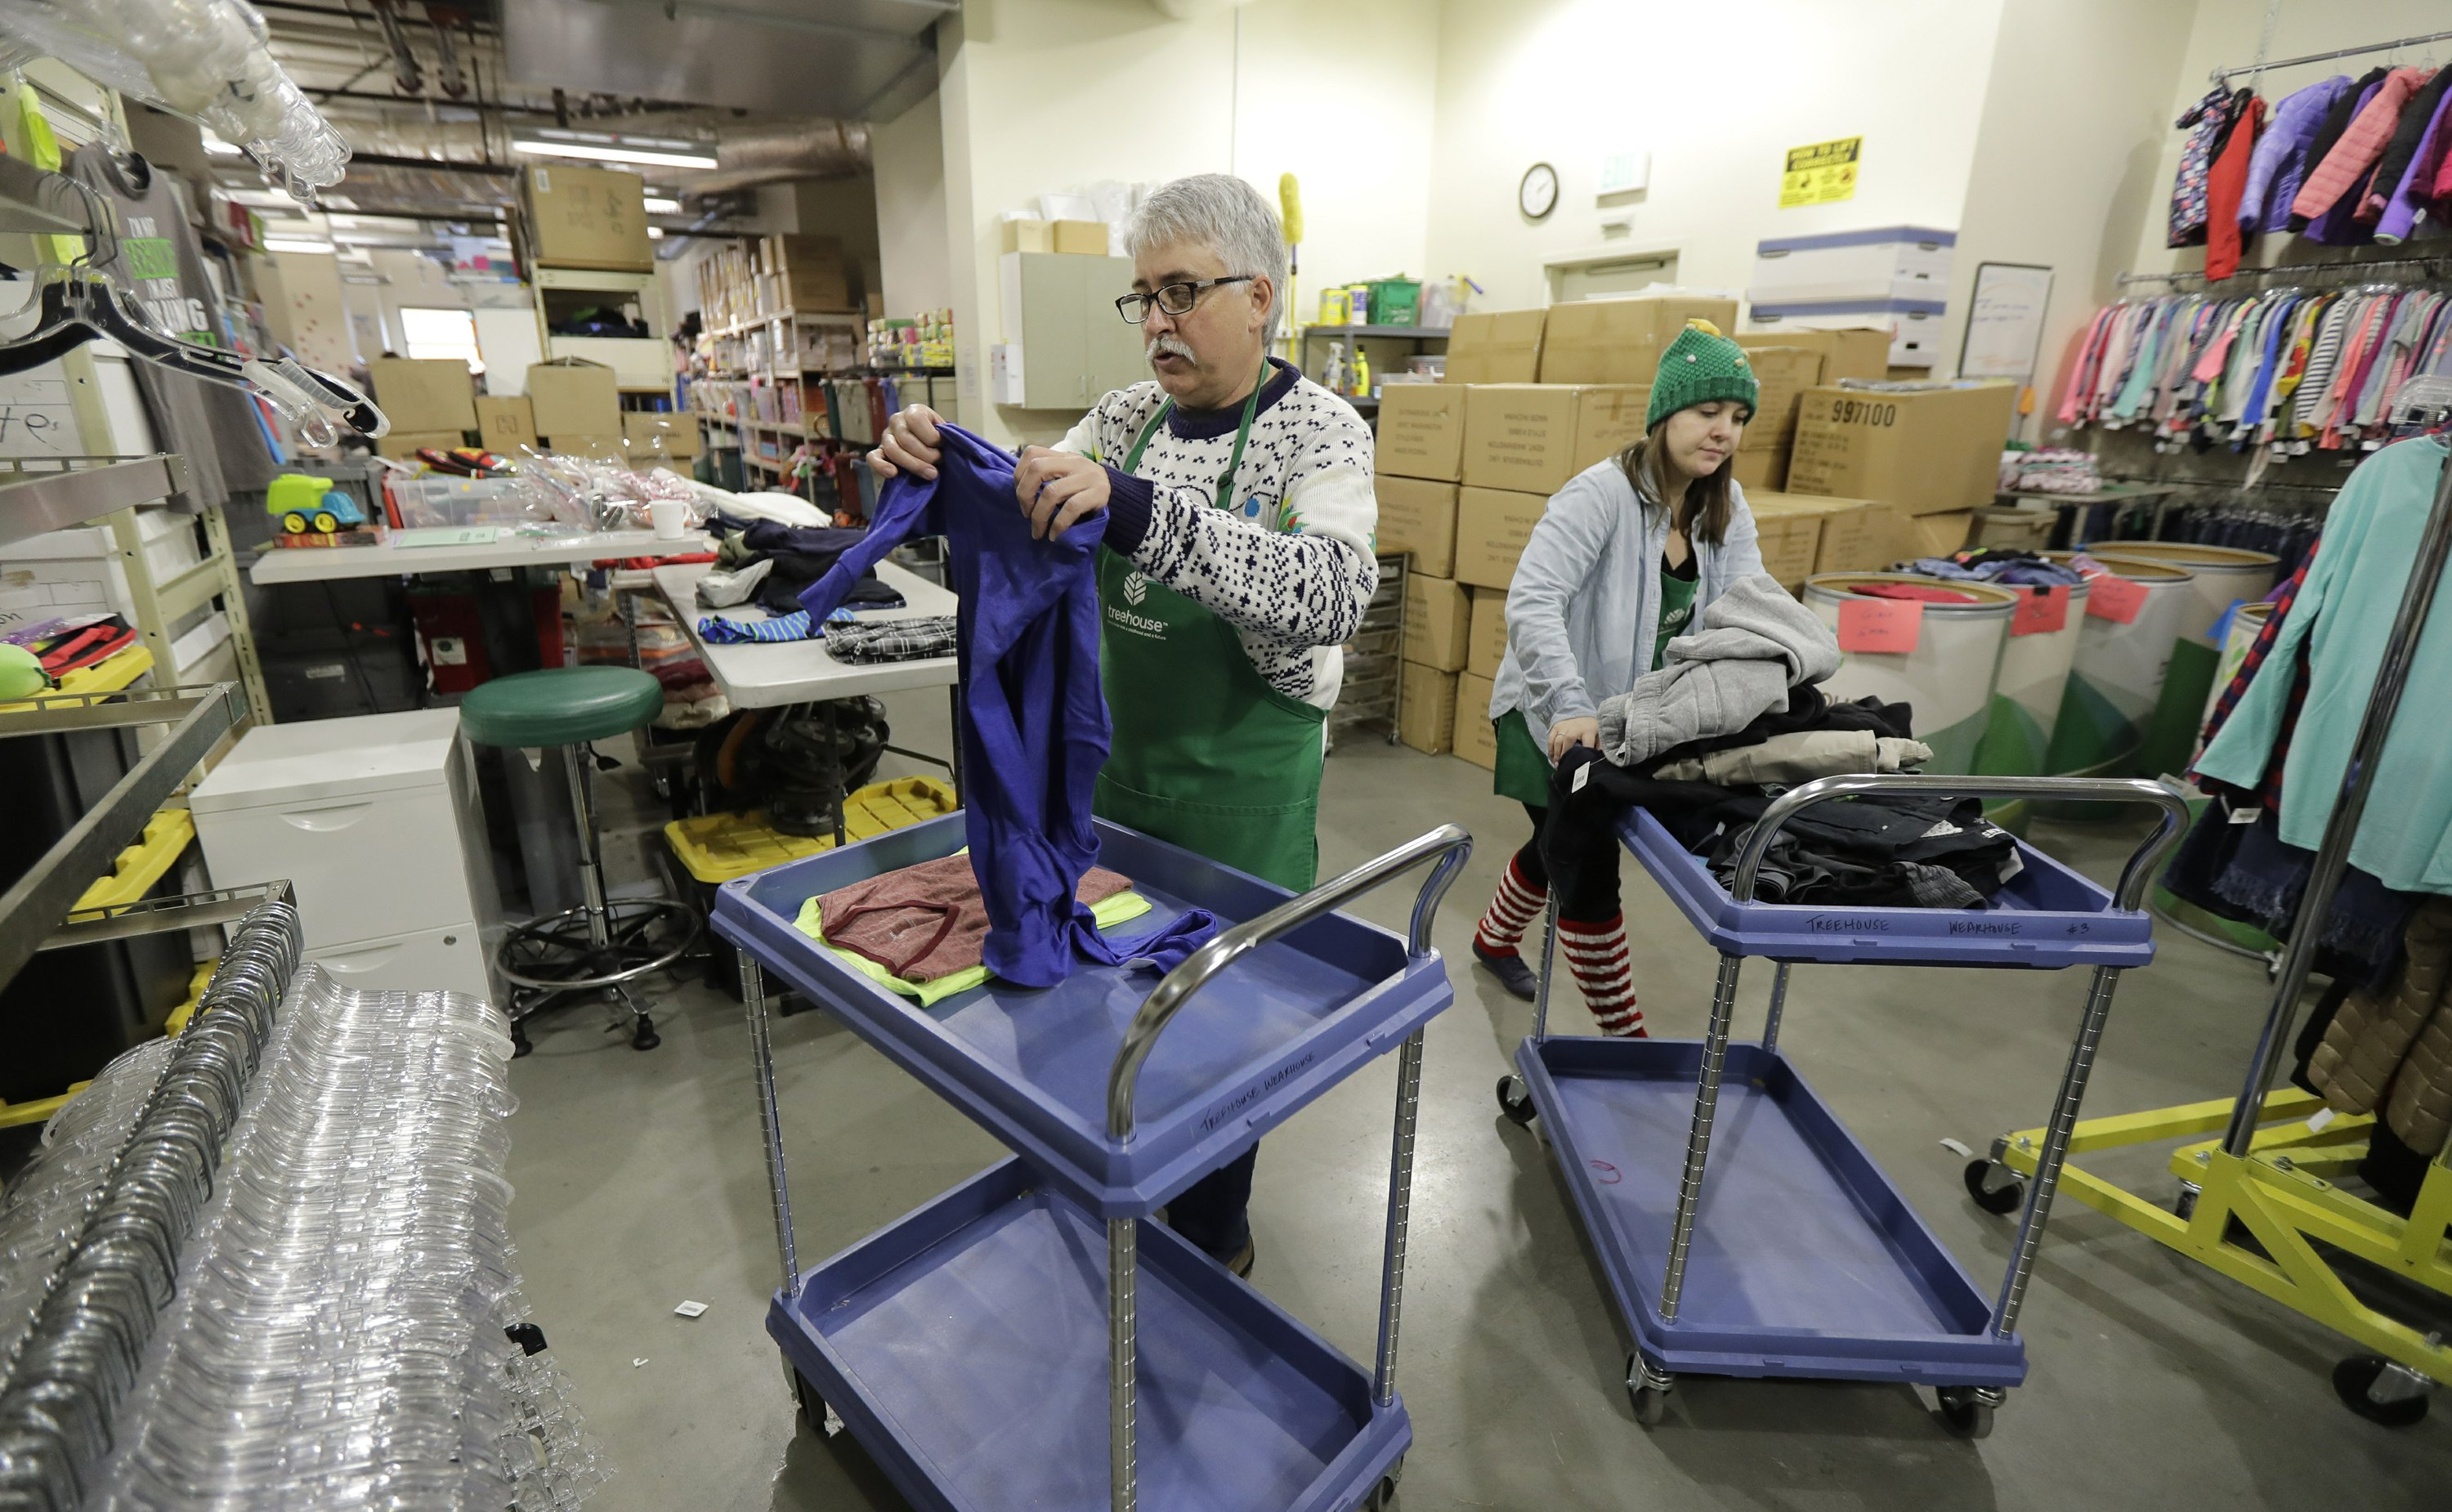 Chris Meyer, left, and Maddi Heim, fold and sort donated clothes at Treehouse, a nonprofit organization in Seattle that serves the needs of children in the foster-care system. The charity was one of several that received donations from the $11 million secret estate of Alan Naiman -- a social worker who died from cancer earlier in 2018 after living a private life of frugality and concern for children facing hardship. Dec. 21, 2018. (Ted S. Warren/AP)